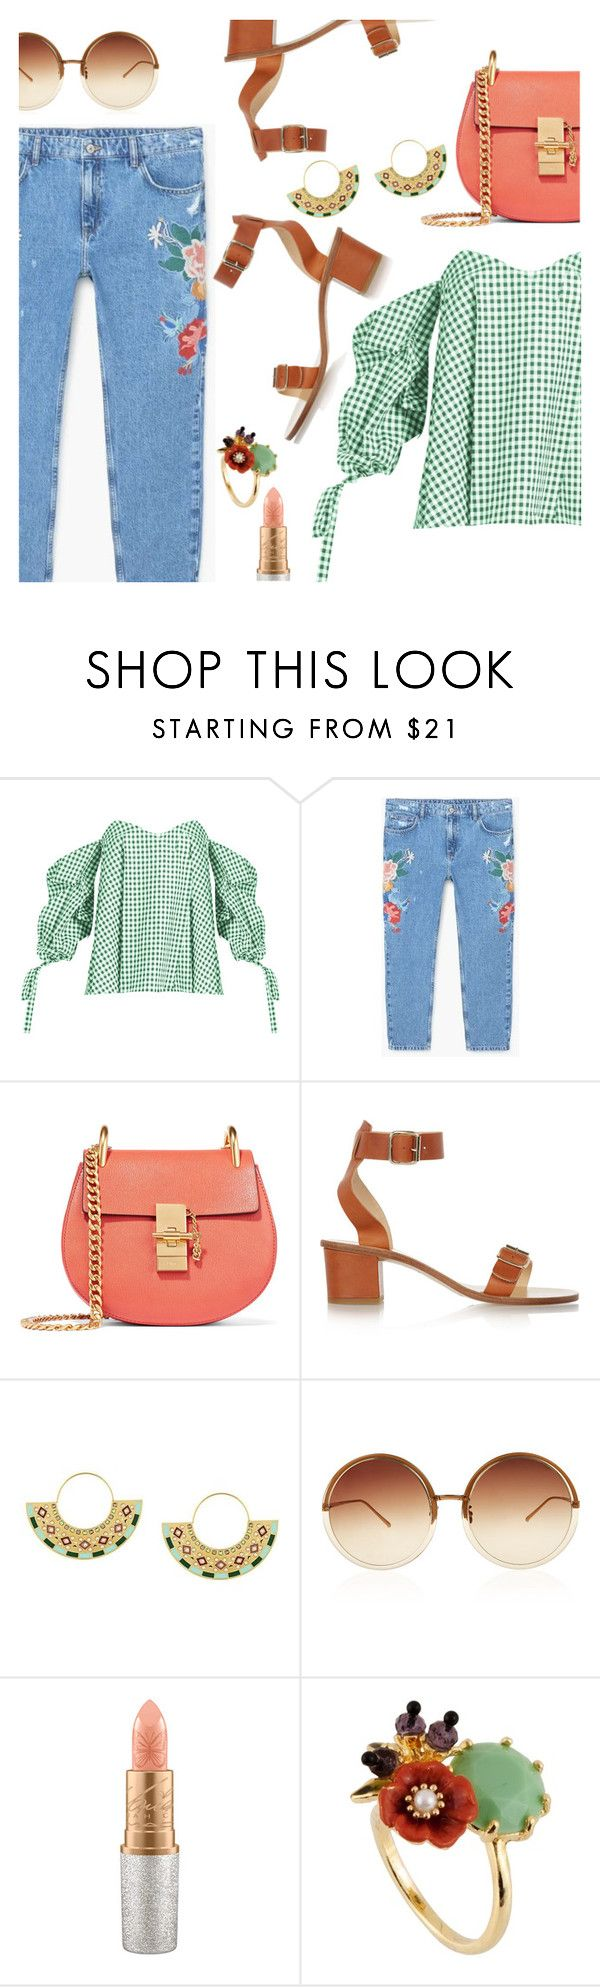 """Something I would like to wear :)"" by dressedbyrose on Polyvore featuring Caroline Constas, MANGO, Chloé, All Tomorrow's Parties, CA&LOU, Linda Farrow, Mariah Carey, Les Néréides, ootd and polyvoreeditorial"